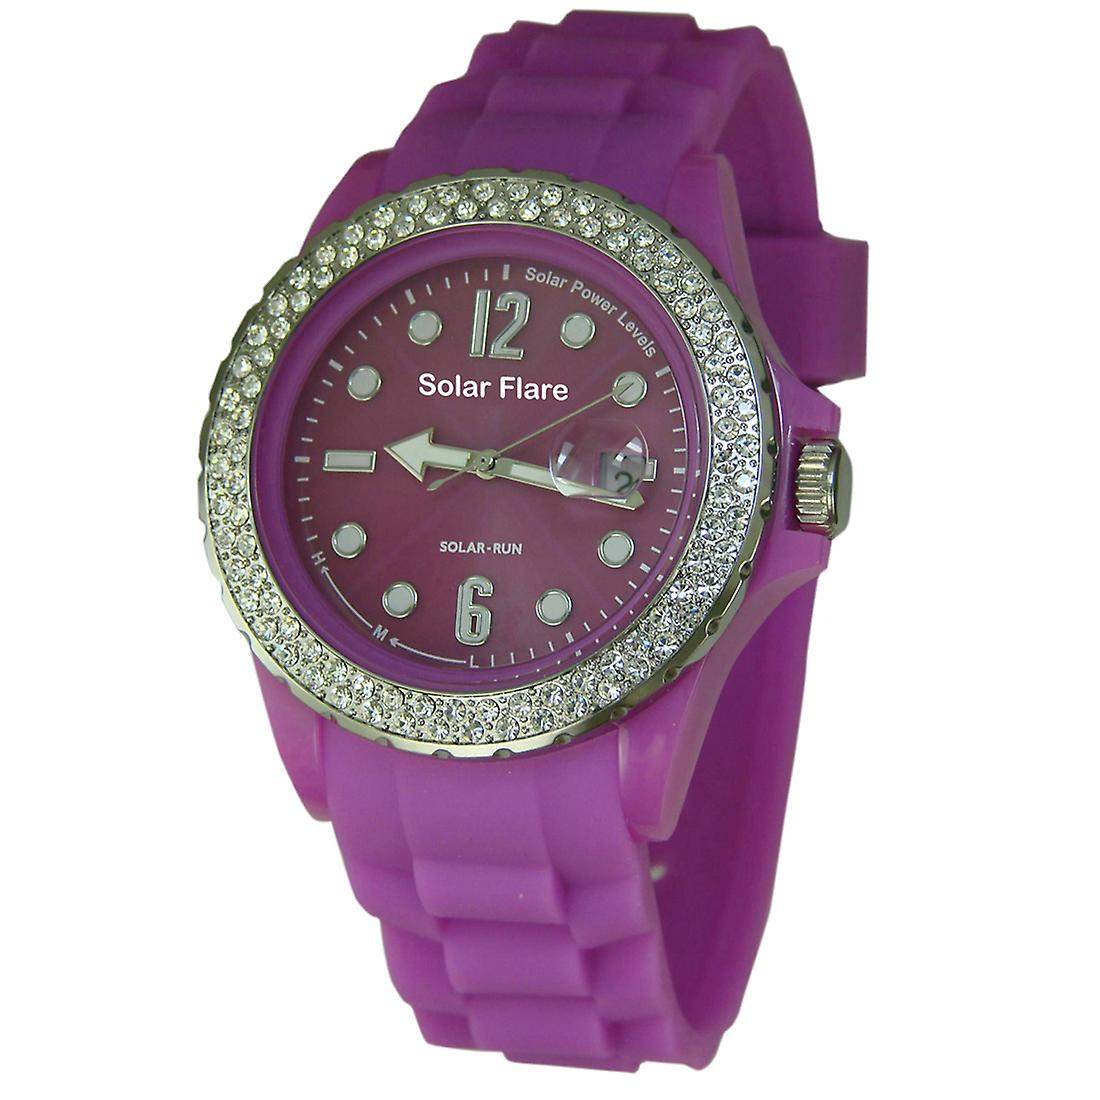 Solar Flare Watch - Purple - Jewelled Bezel